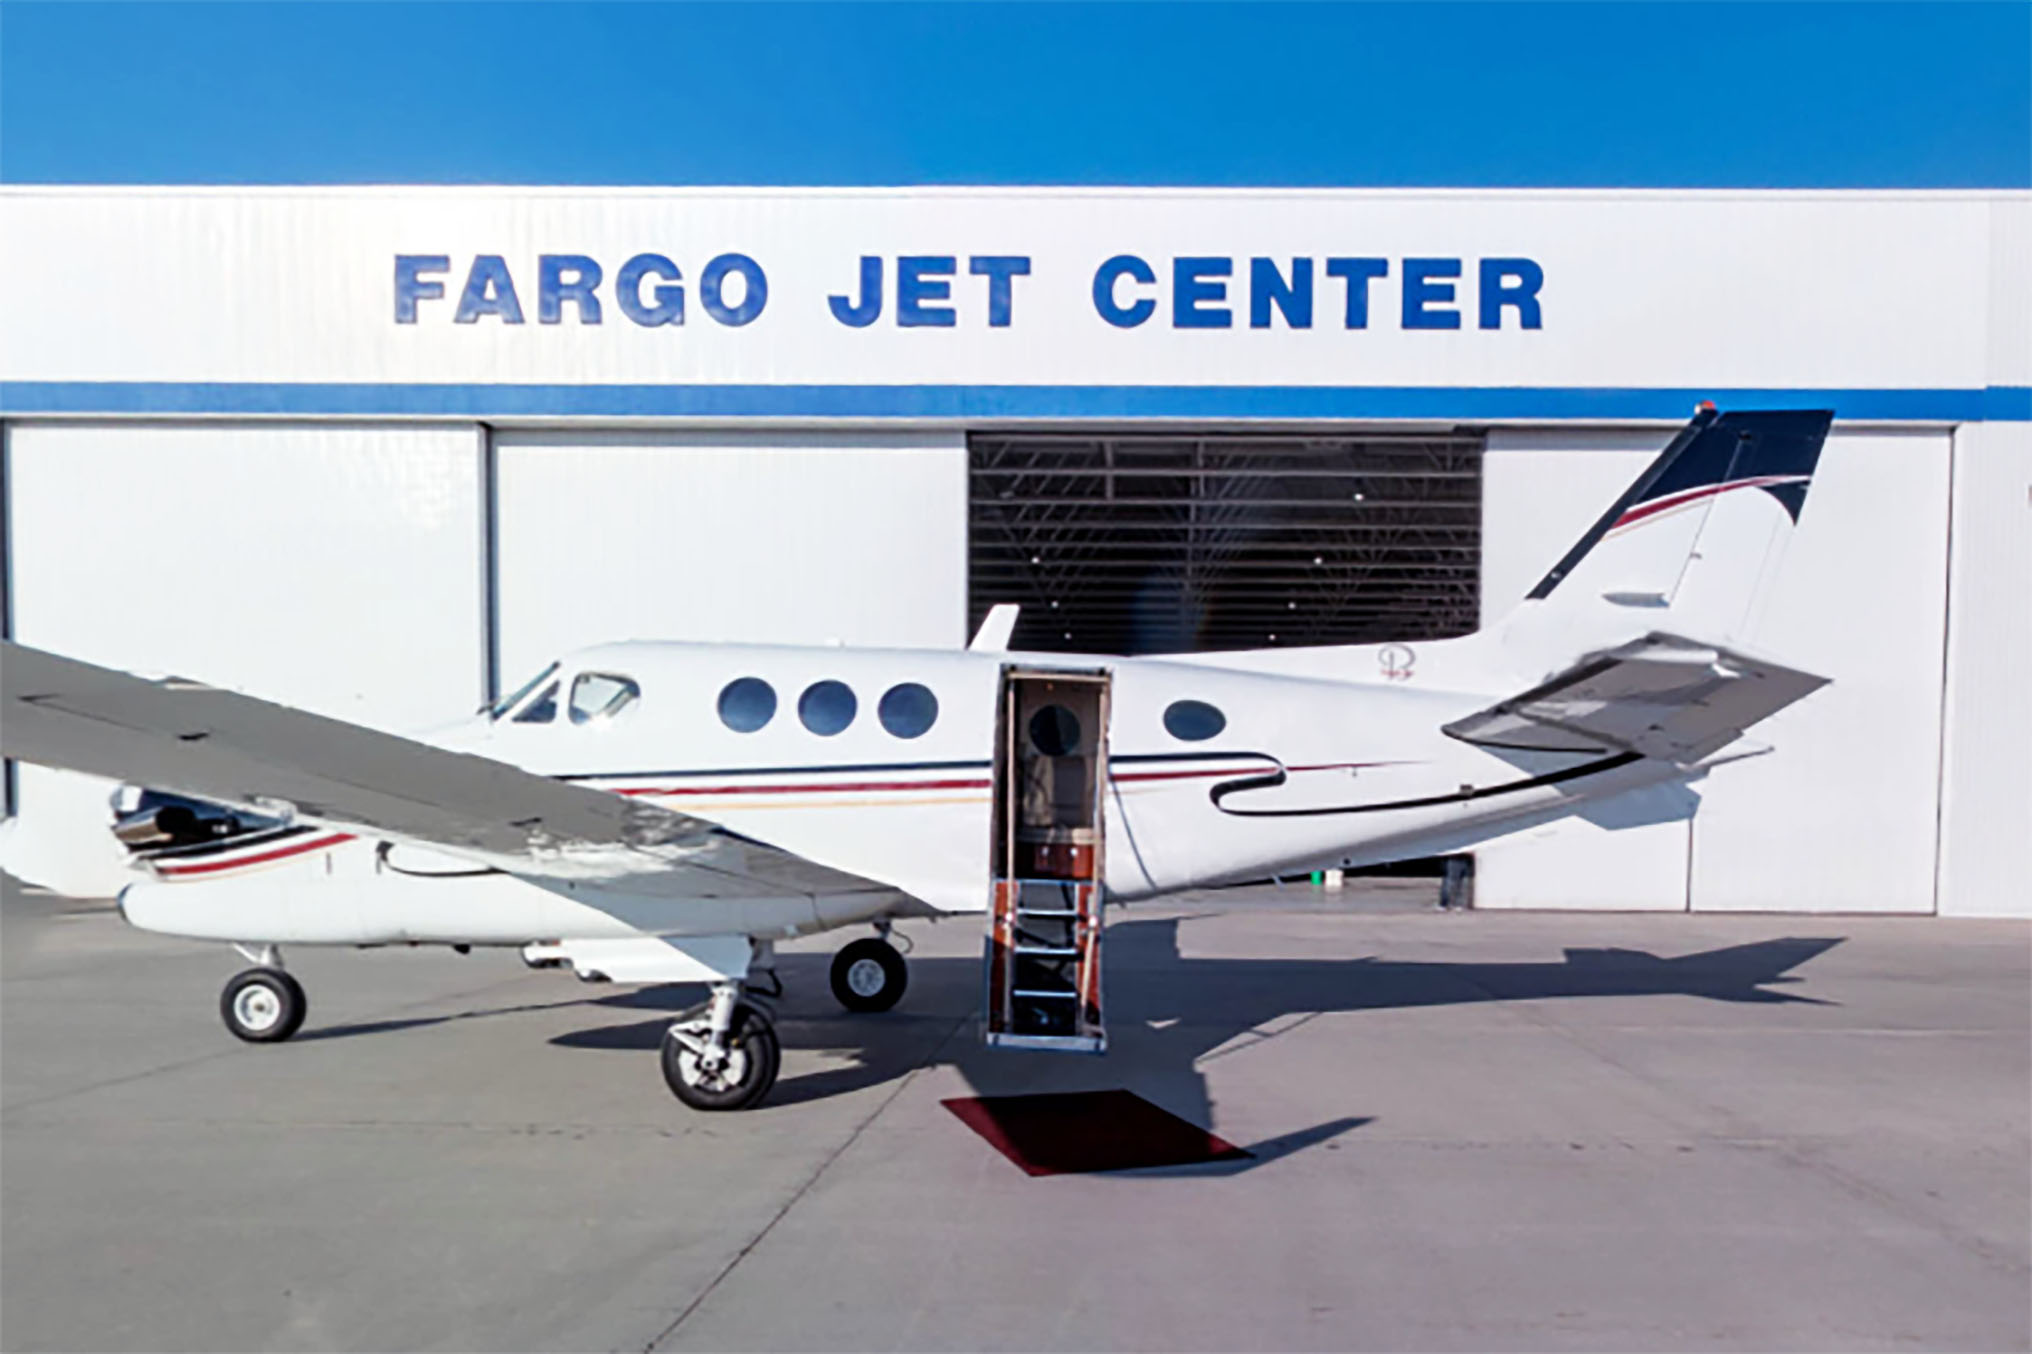 king-air-90-n405dd-fargo-jet-center-aircraft-charter